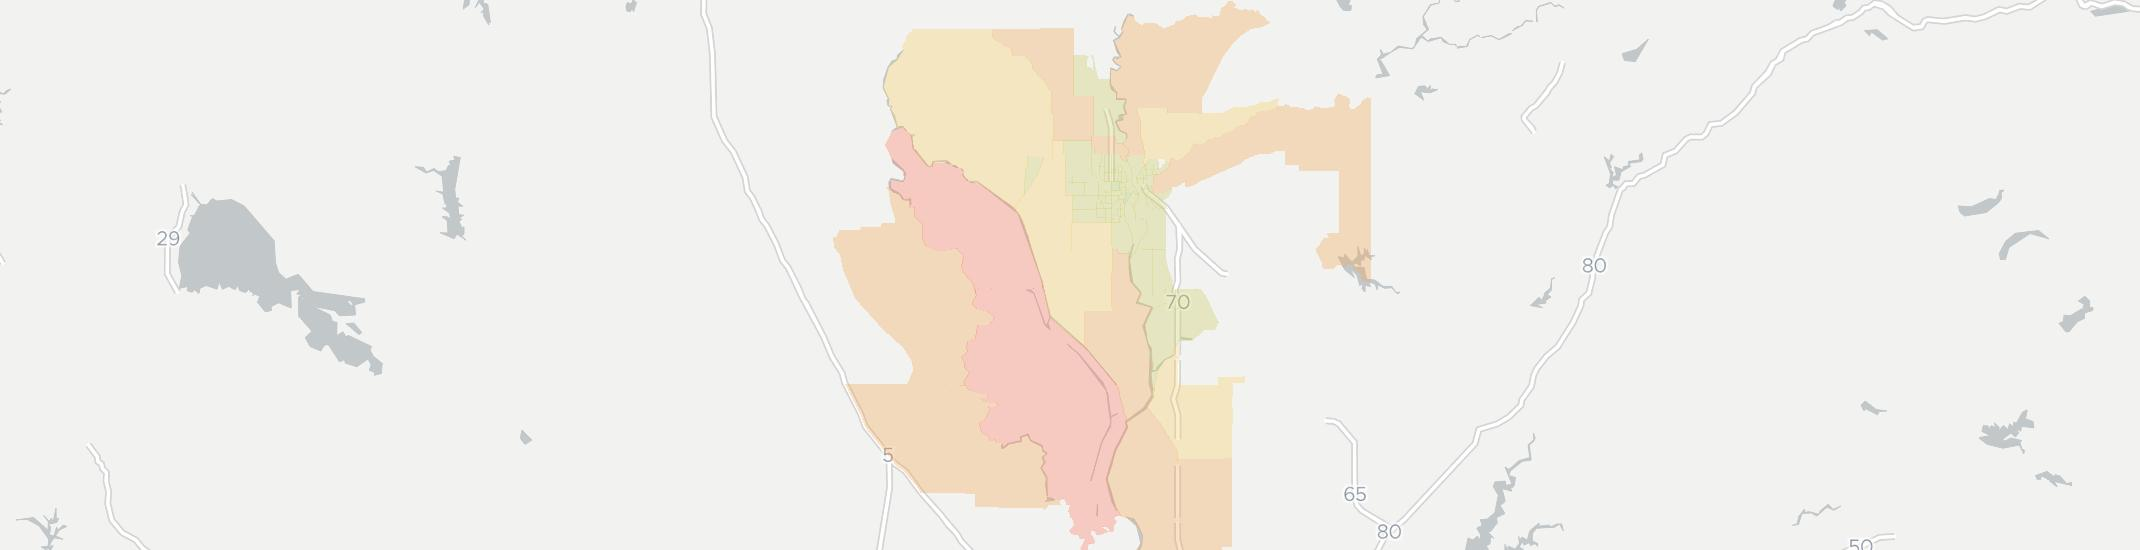 Yuba City Internet Competition Map. Click for interactive map.